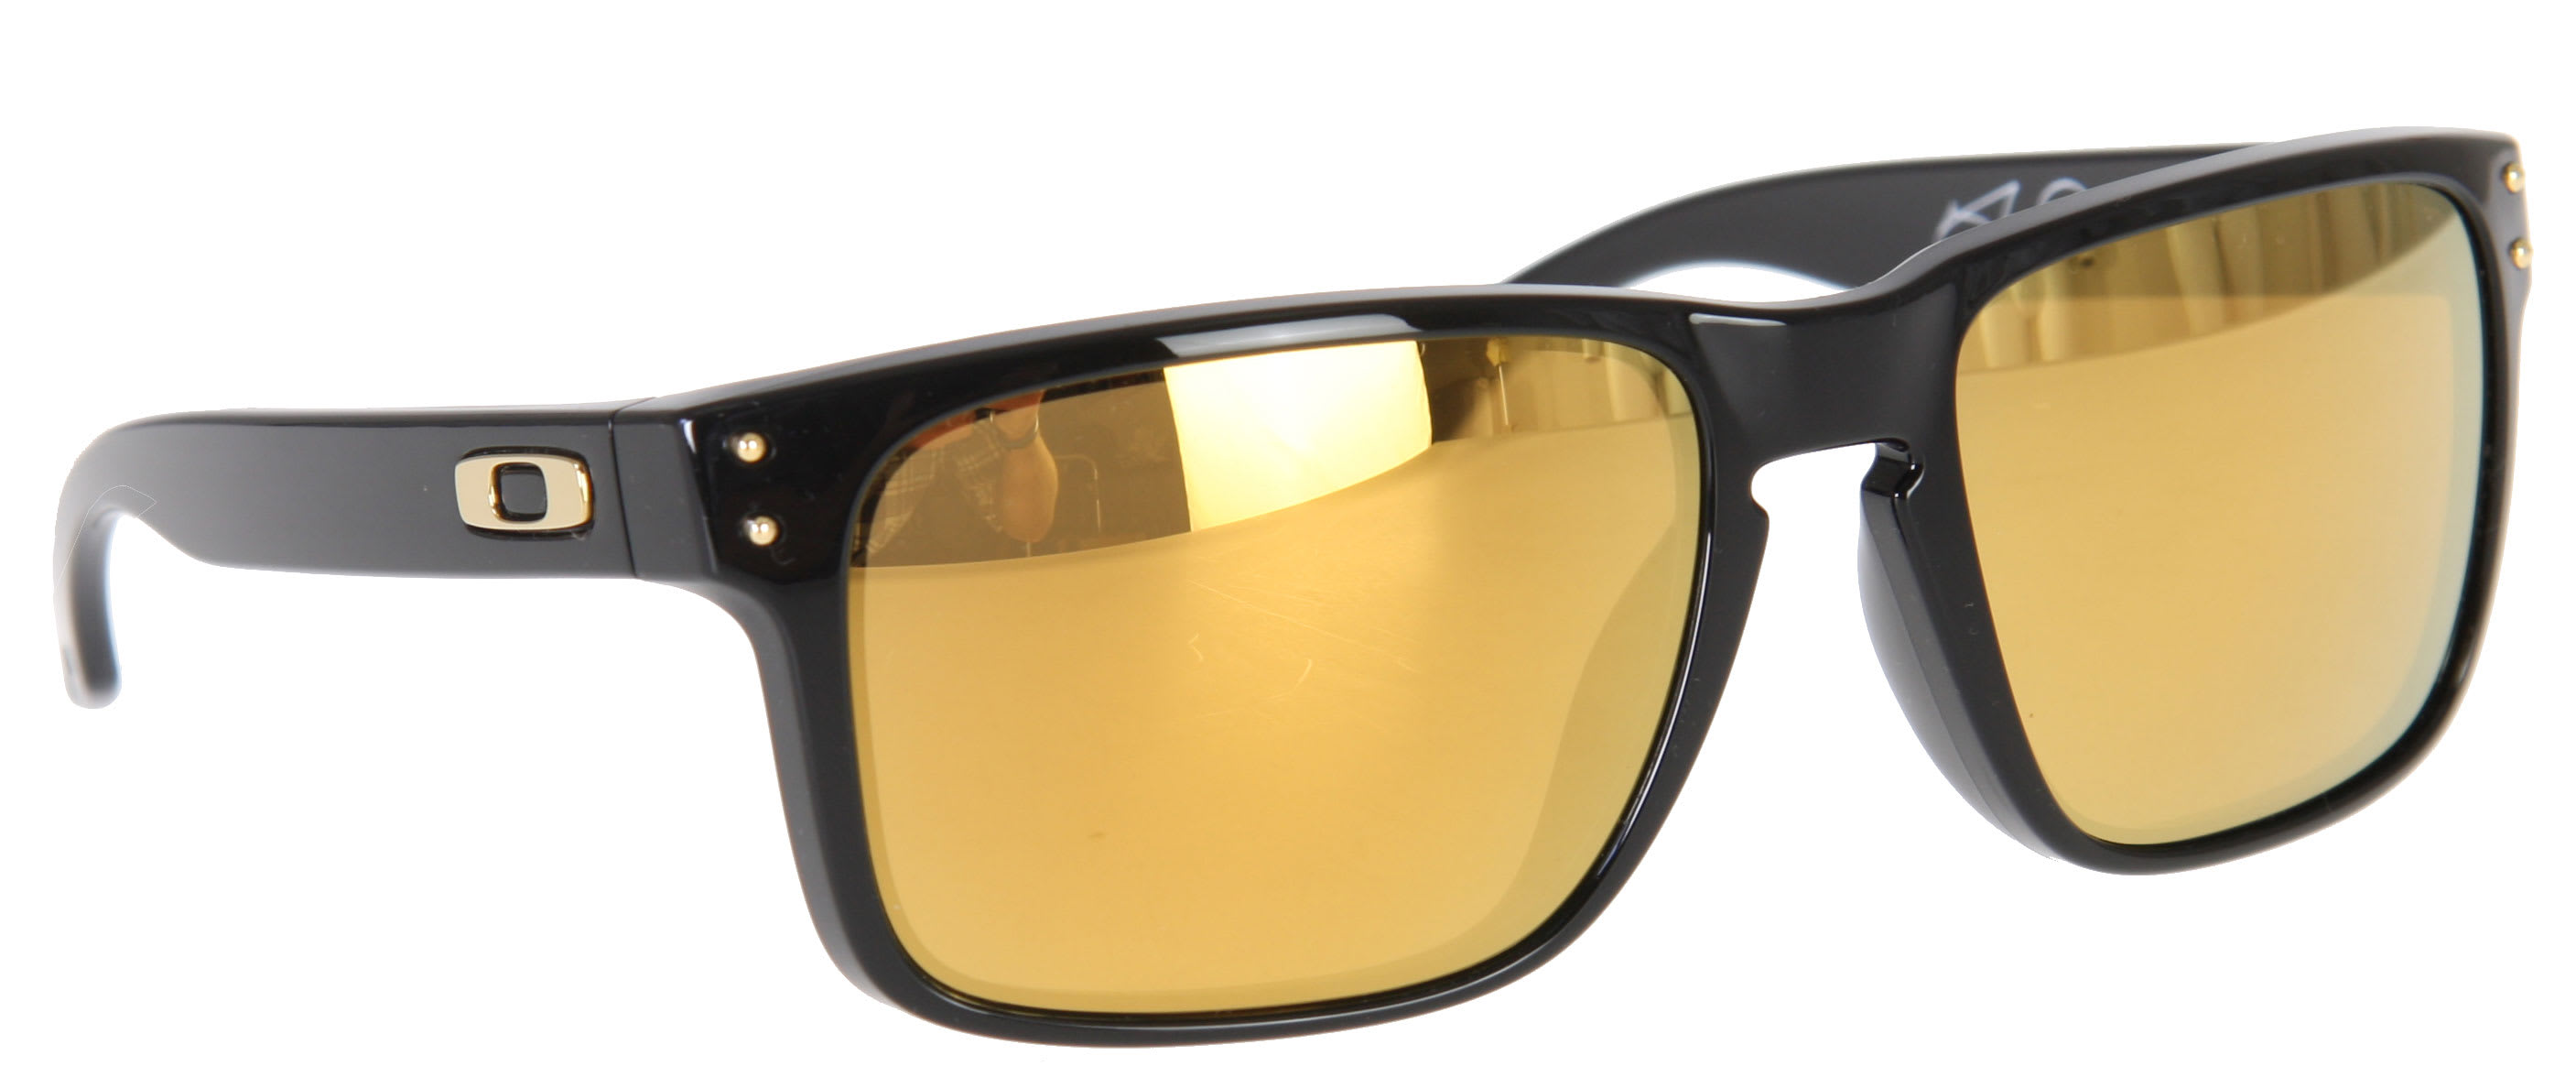 Oakley Sunglasses Price Philippines  oakley holbrook philippines atlantabeadgallery